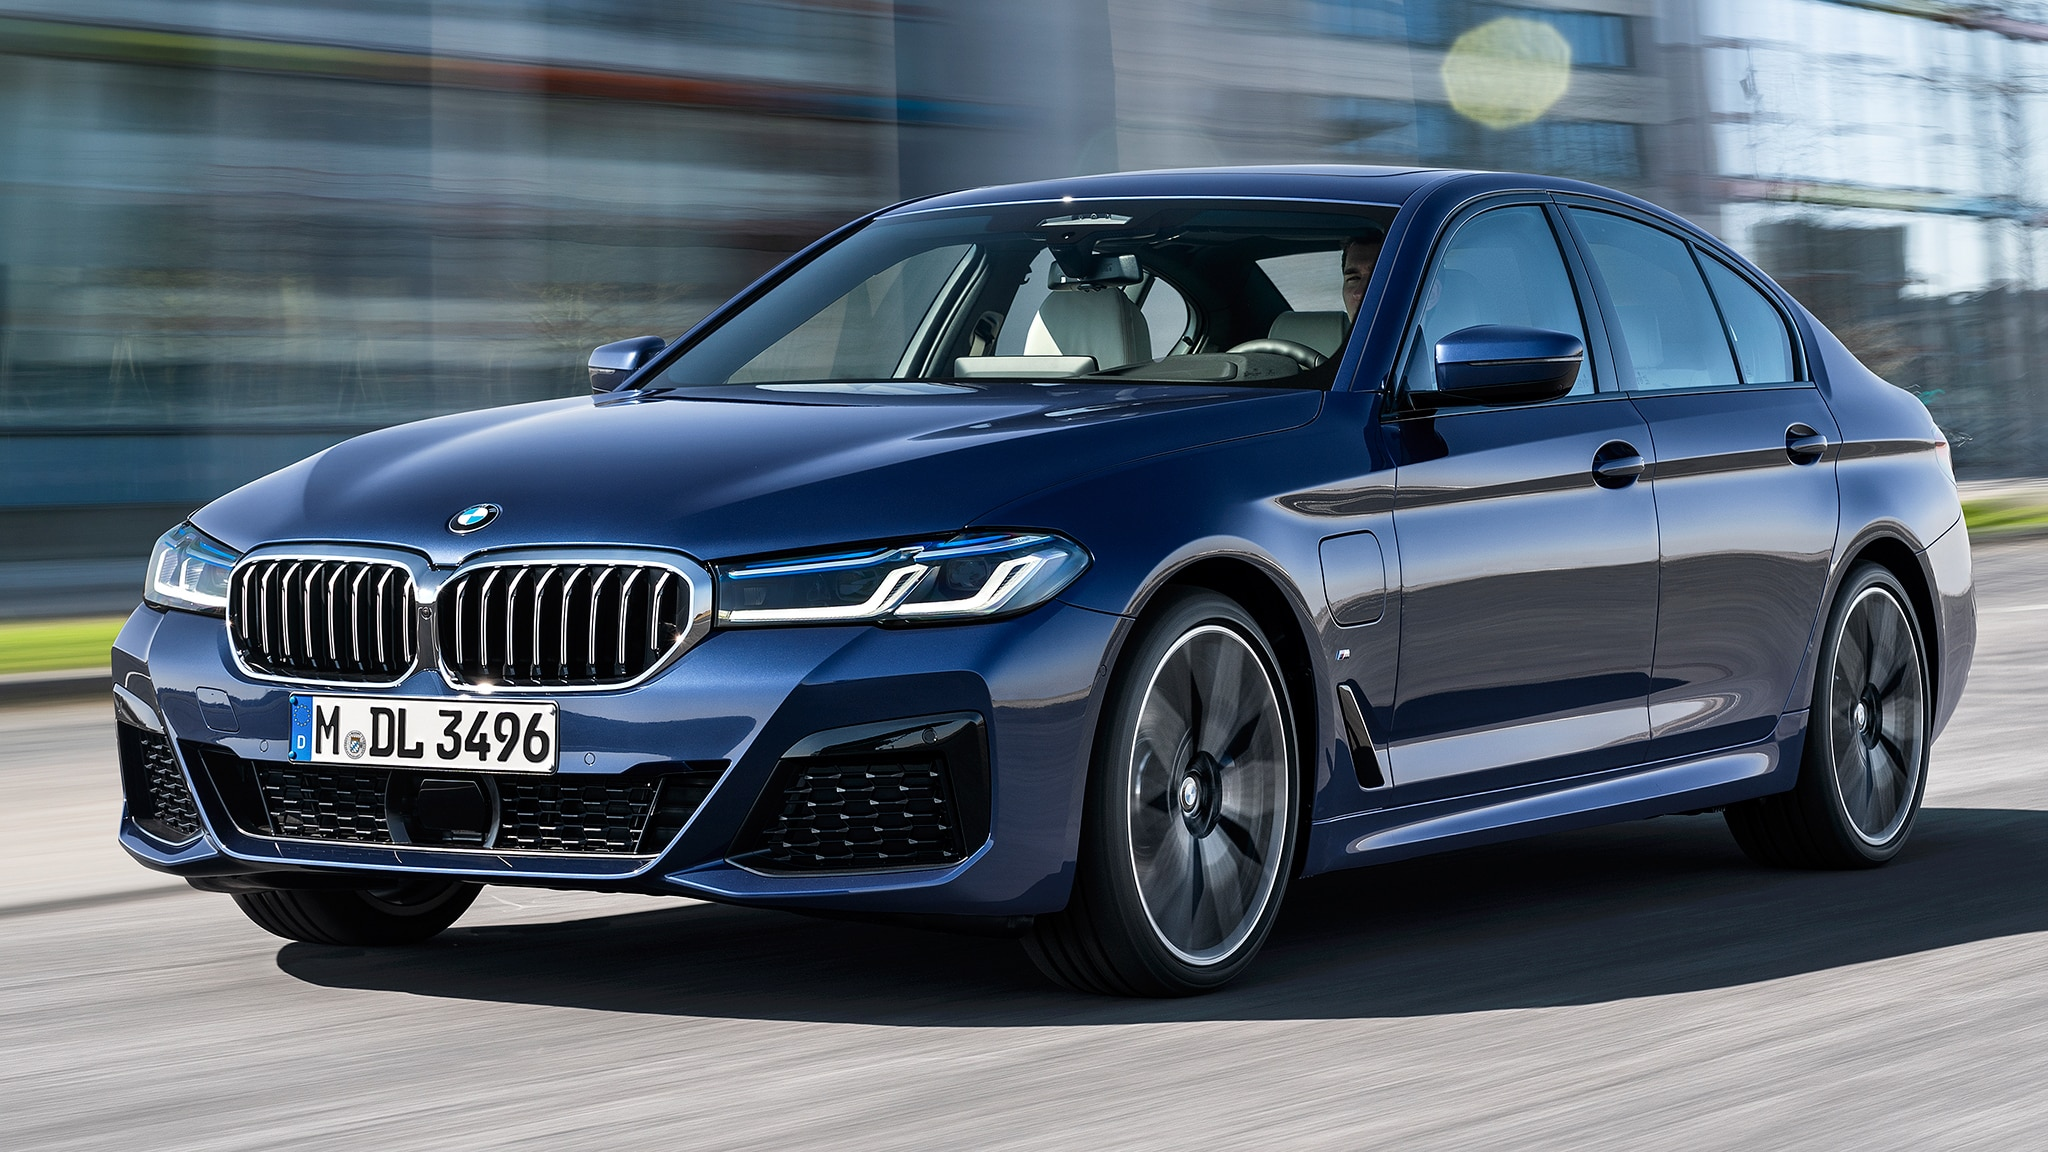 2021 Bmw 5 Series Adds New Nose Mild Hybrid Technology Shout